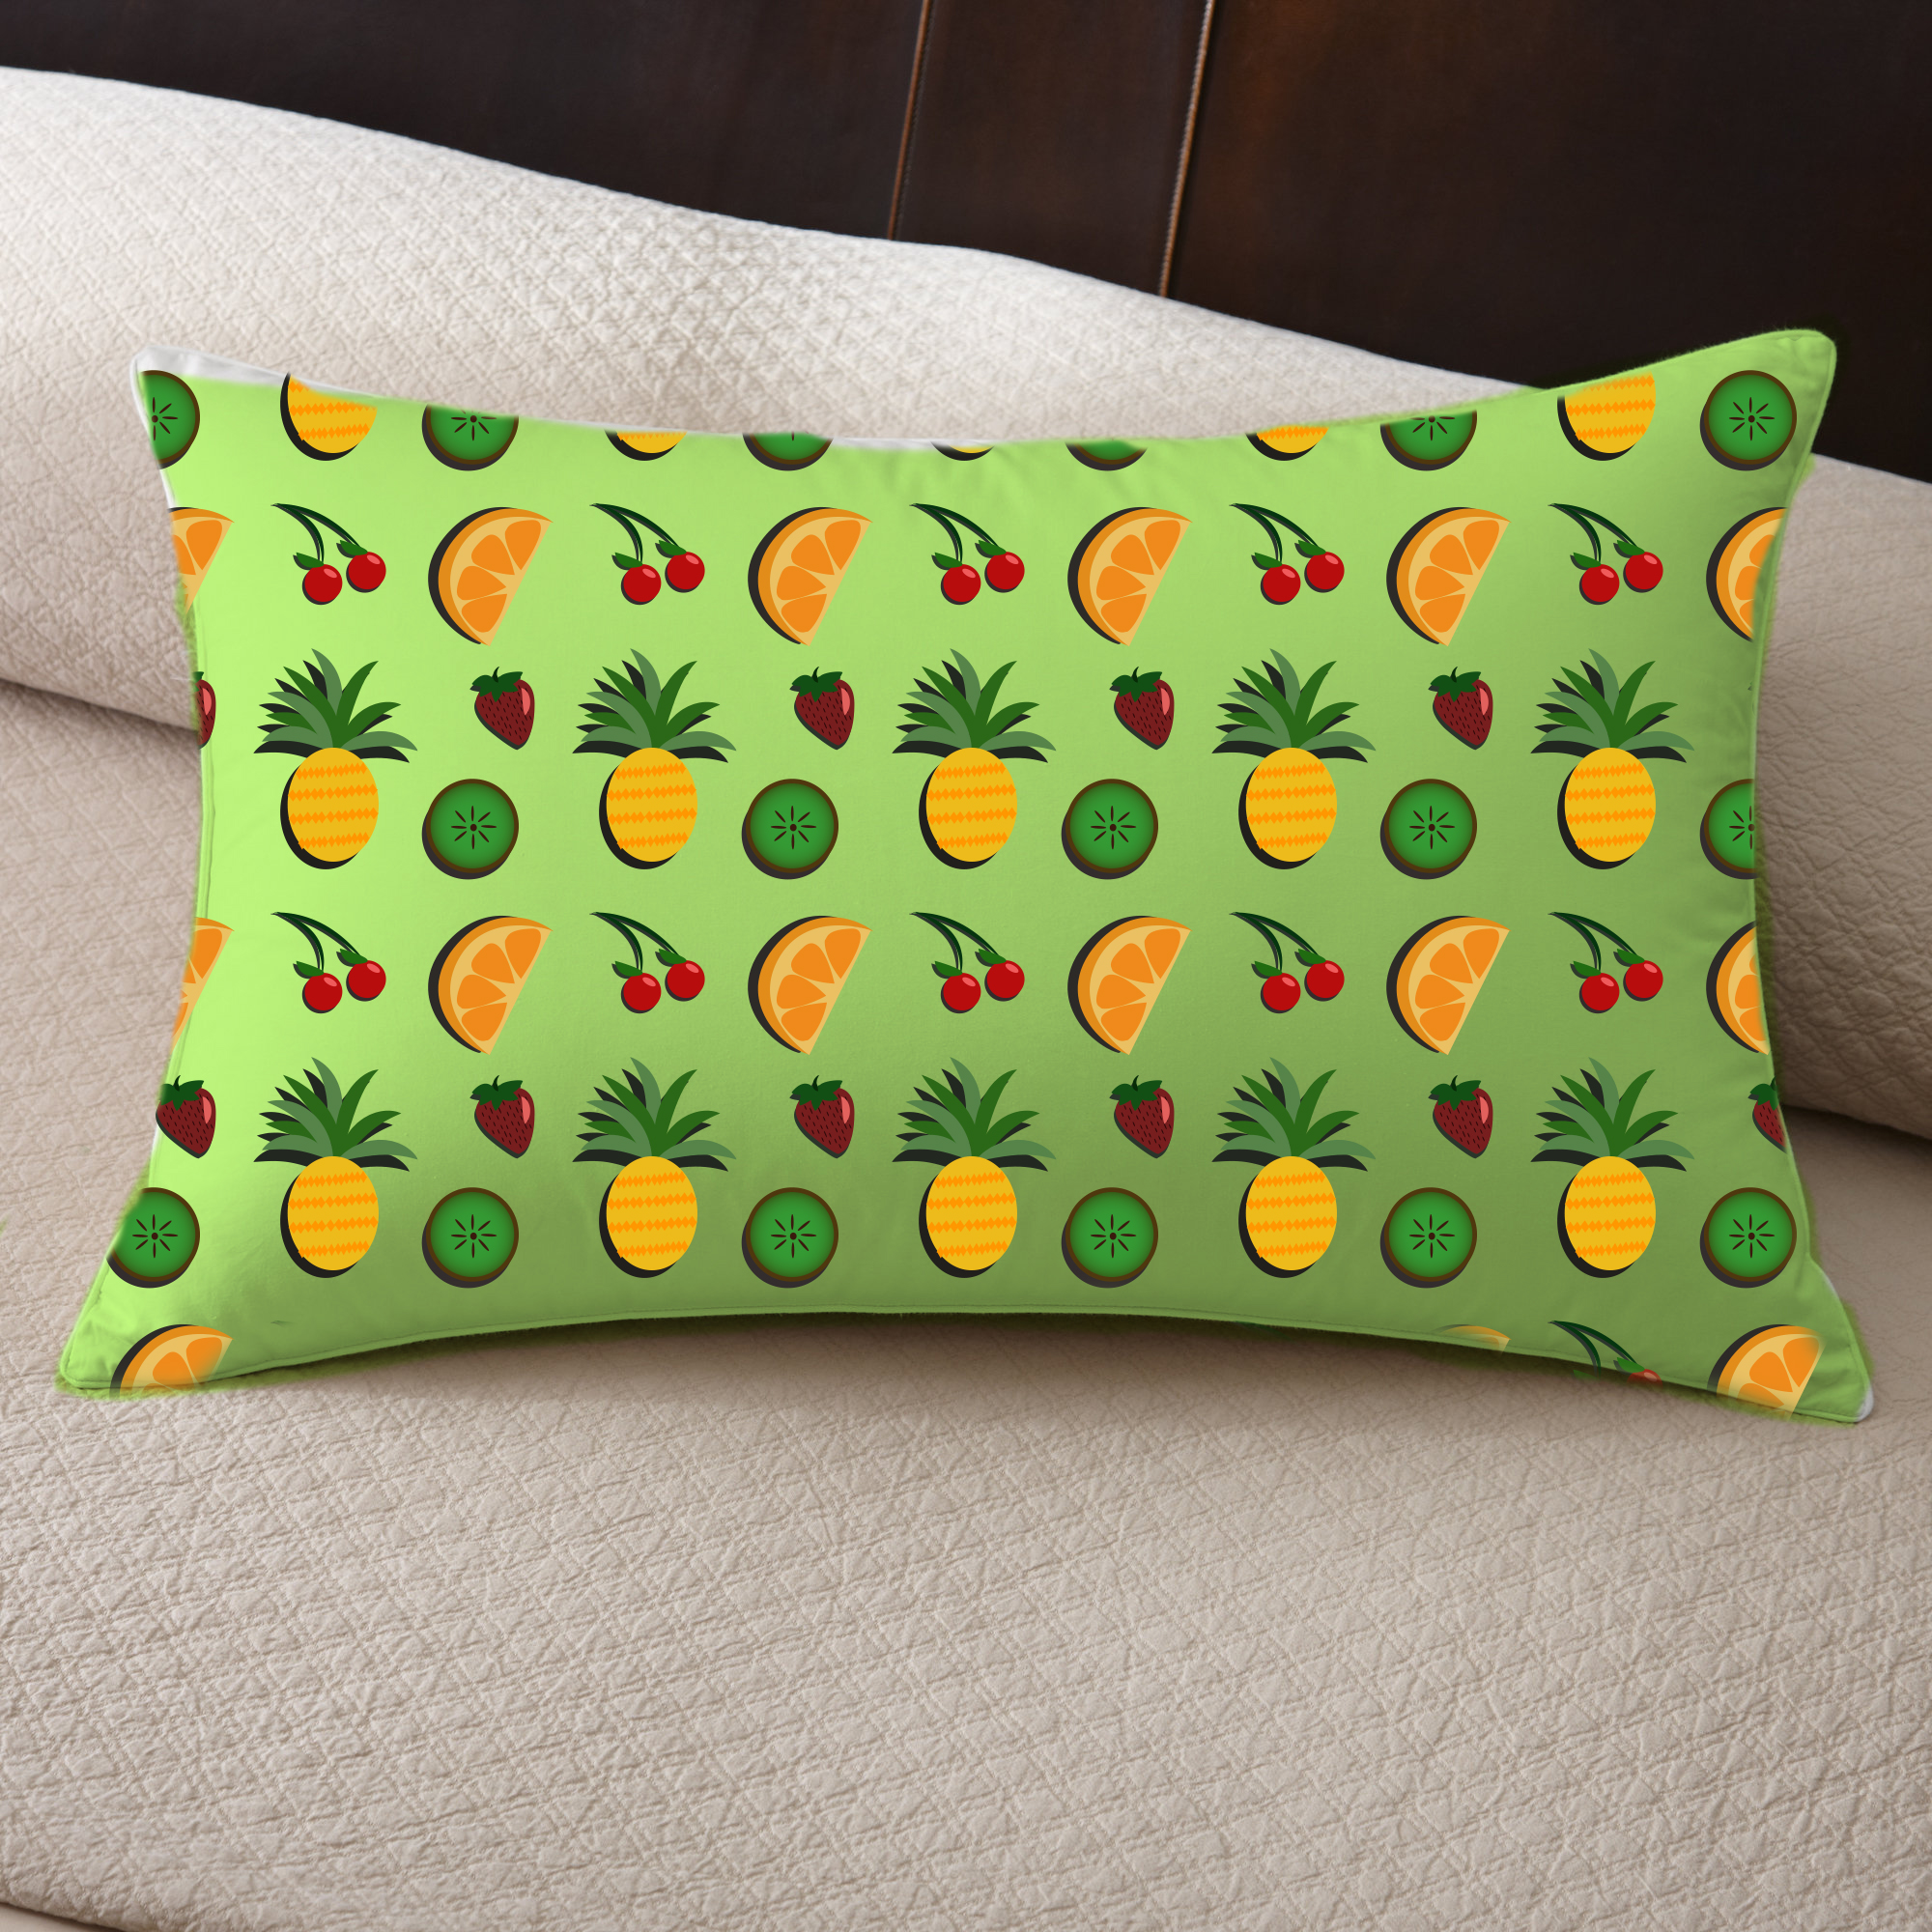 fruit pillow.jpg